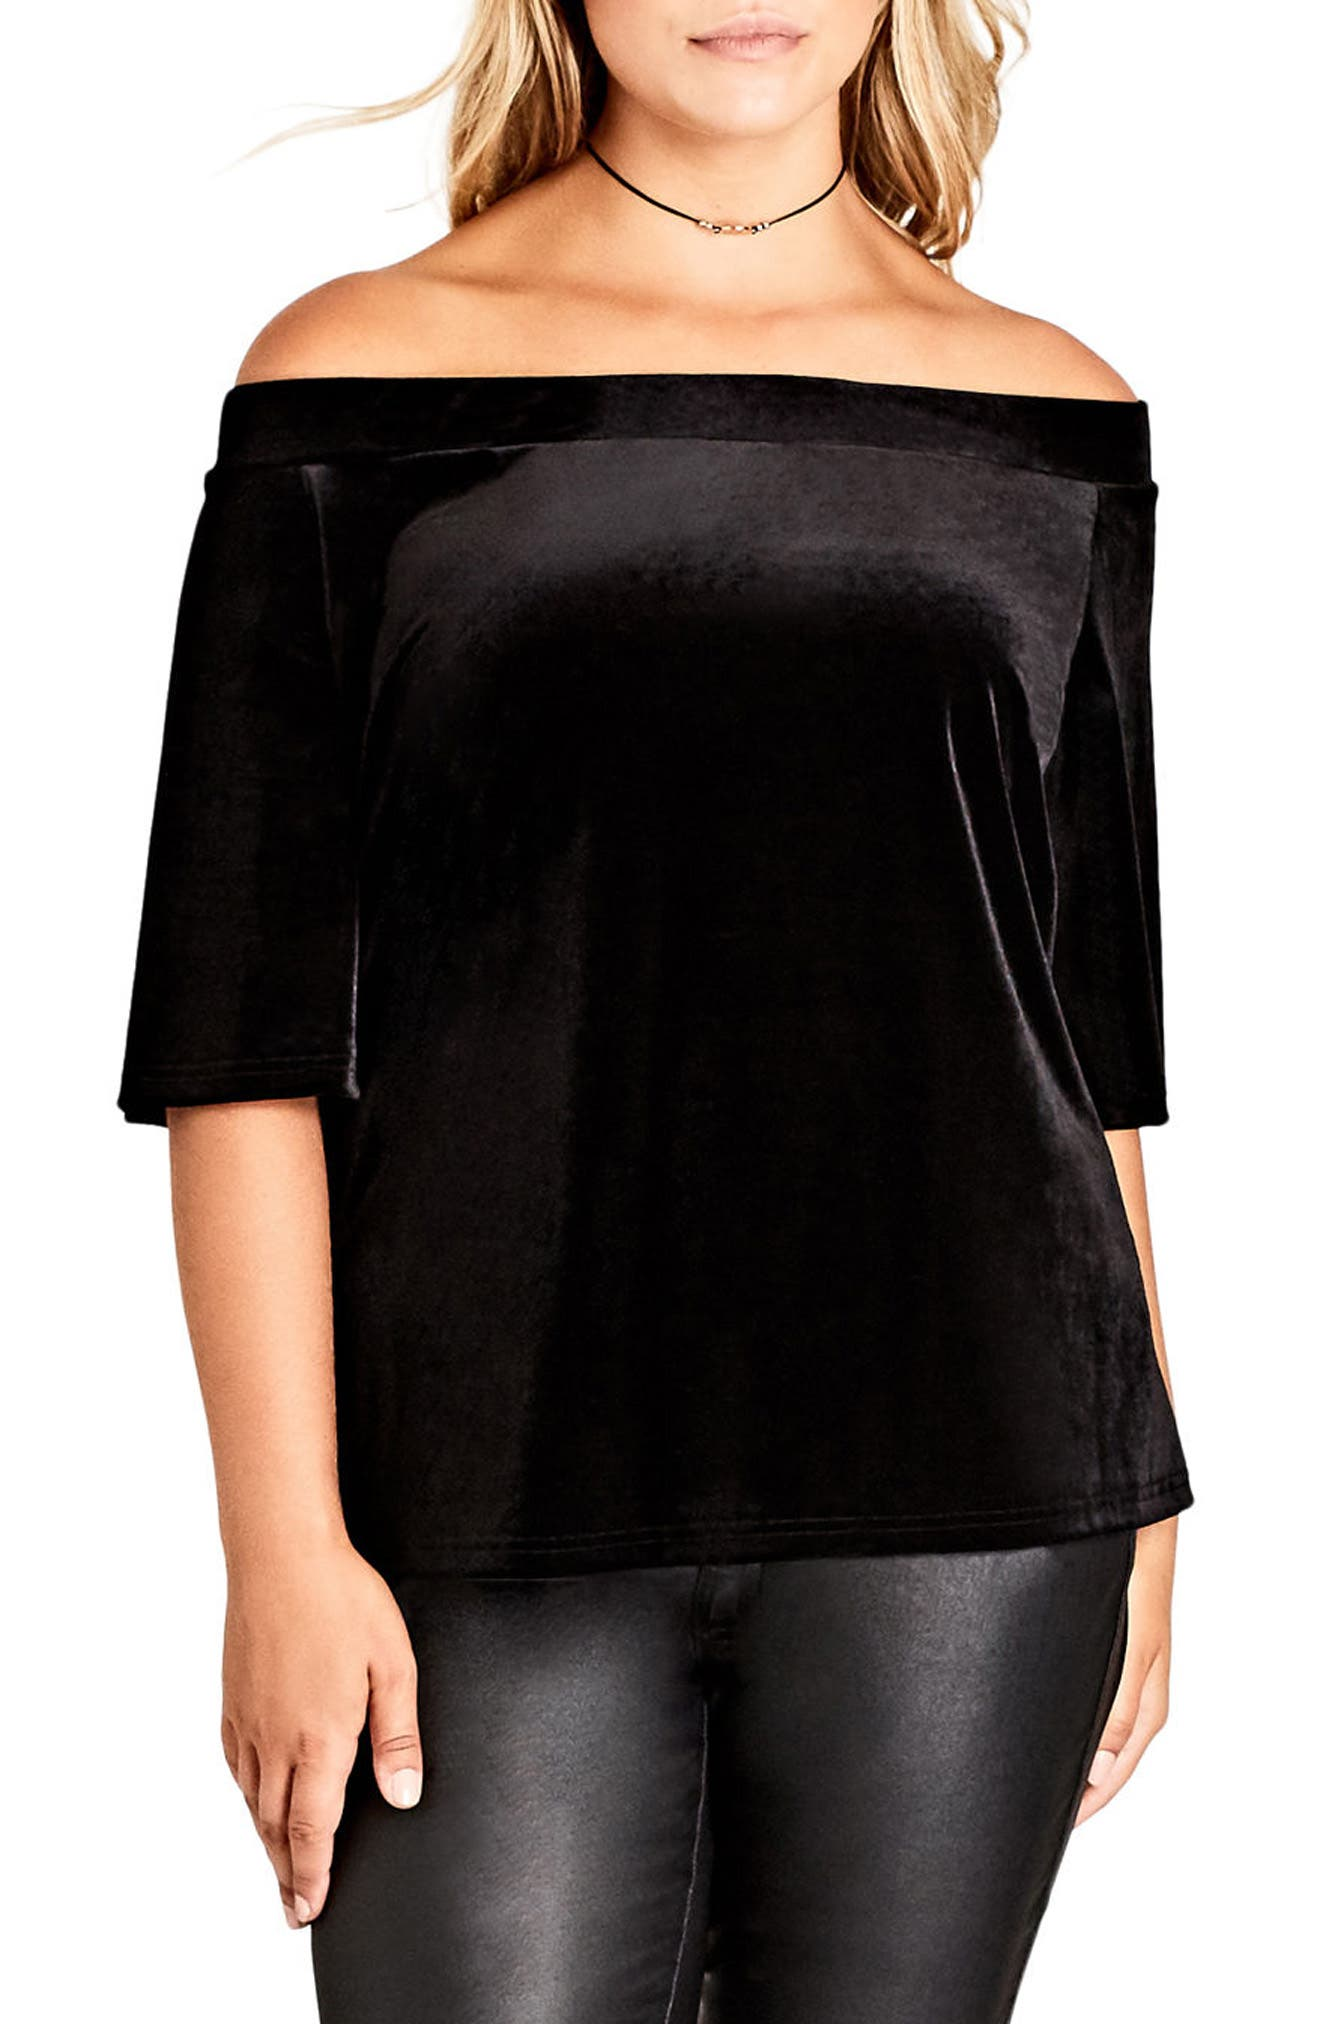 Alternate Image 1 Selected - City Chic Stretch Velvet Off the Shoulder Top (Plus Size)